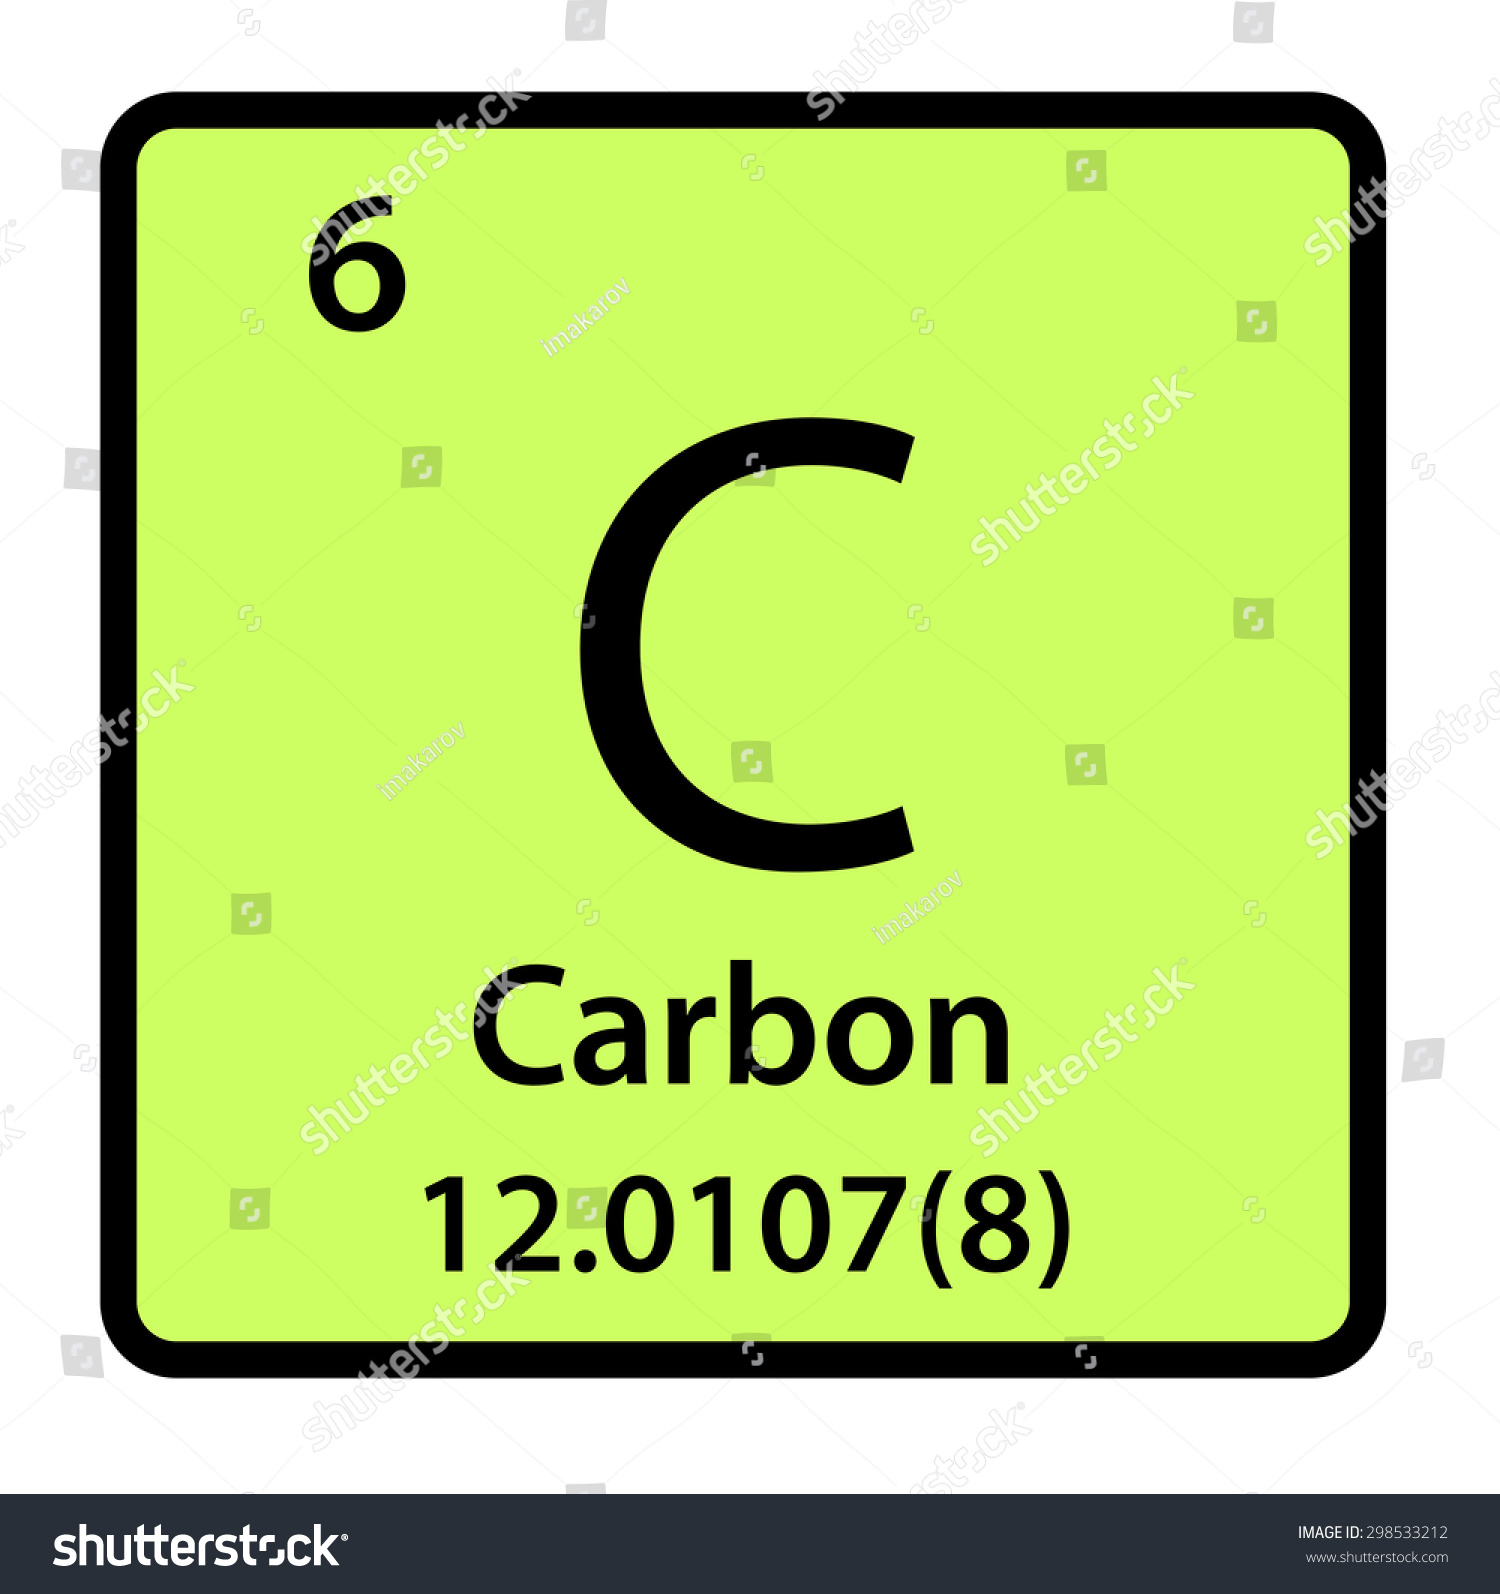 Element carbon periodic table stock illustration 298533212 element carbon of the periodic table gamestrikefo Image collections